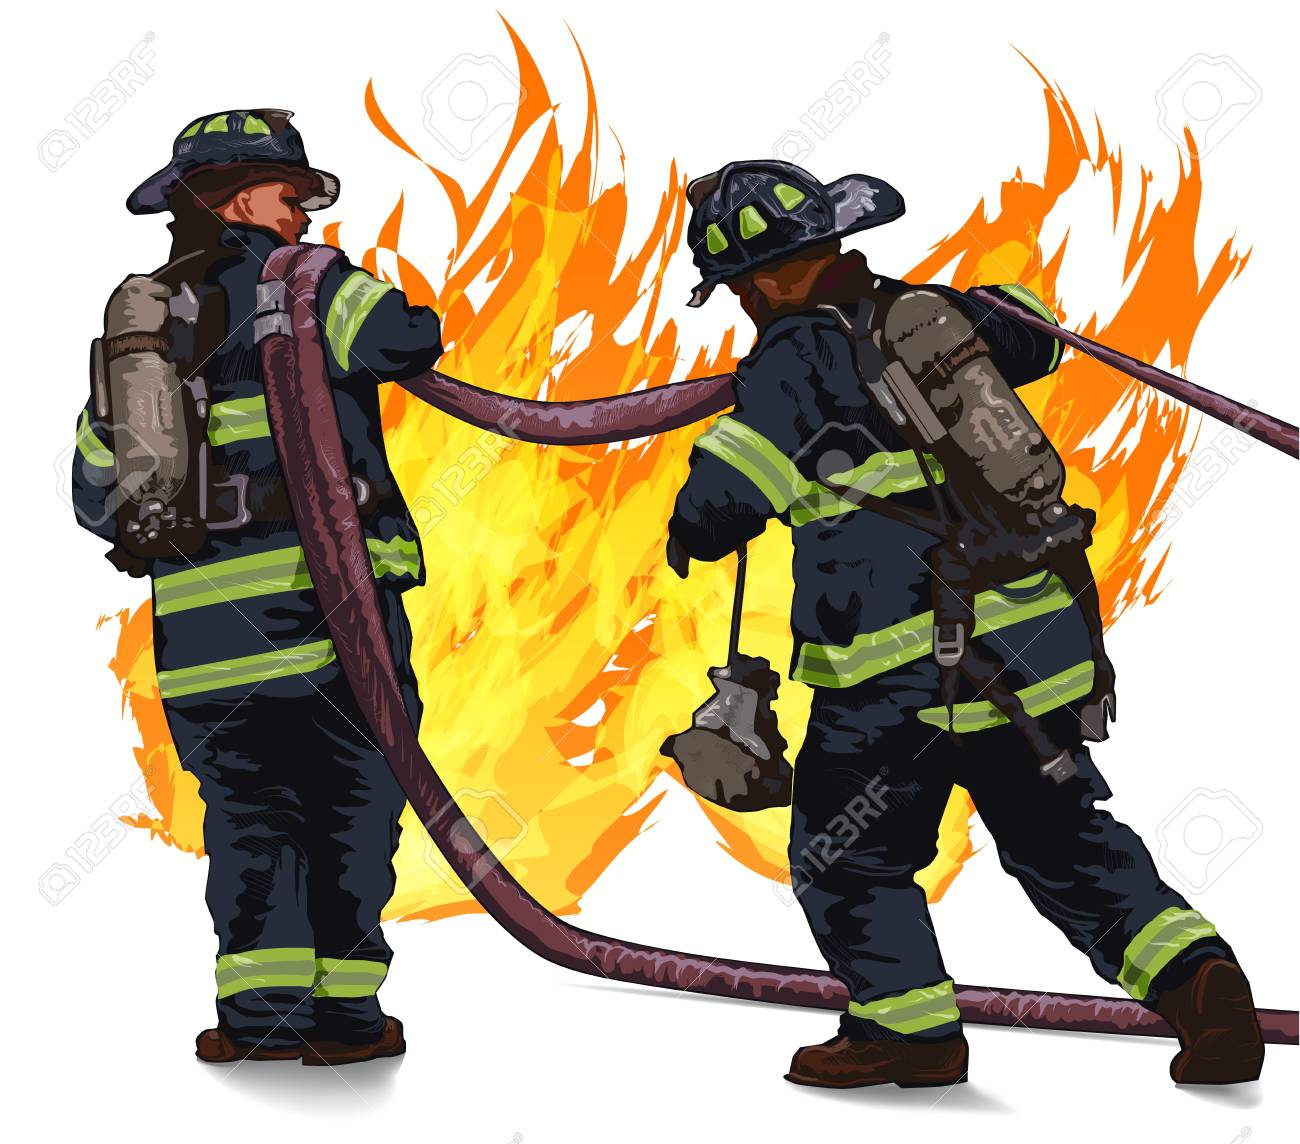 Firefighters drag the hose against the fire on a white background - 98377027